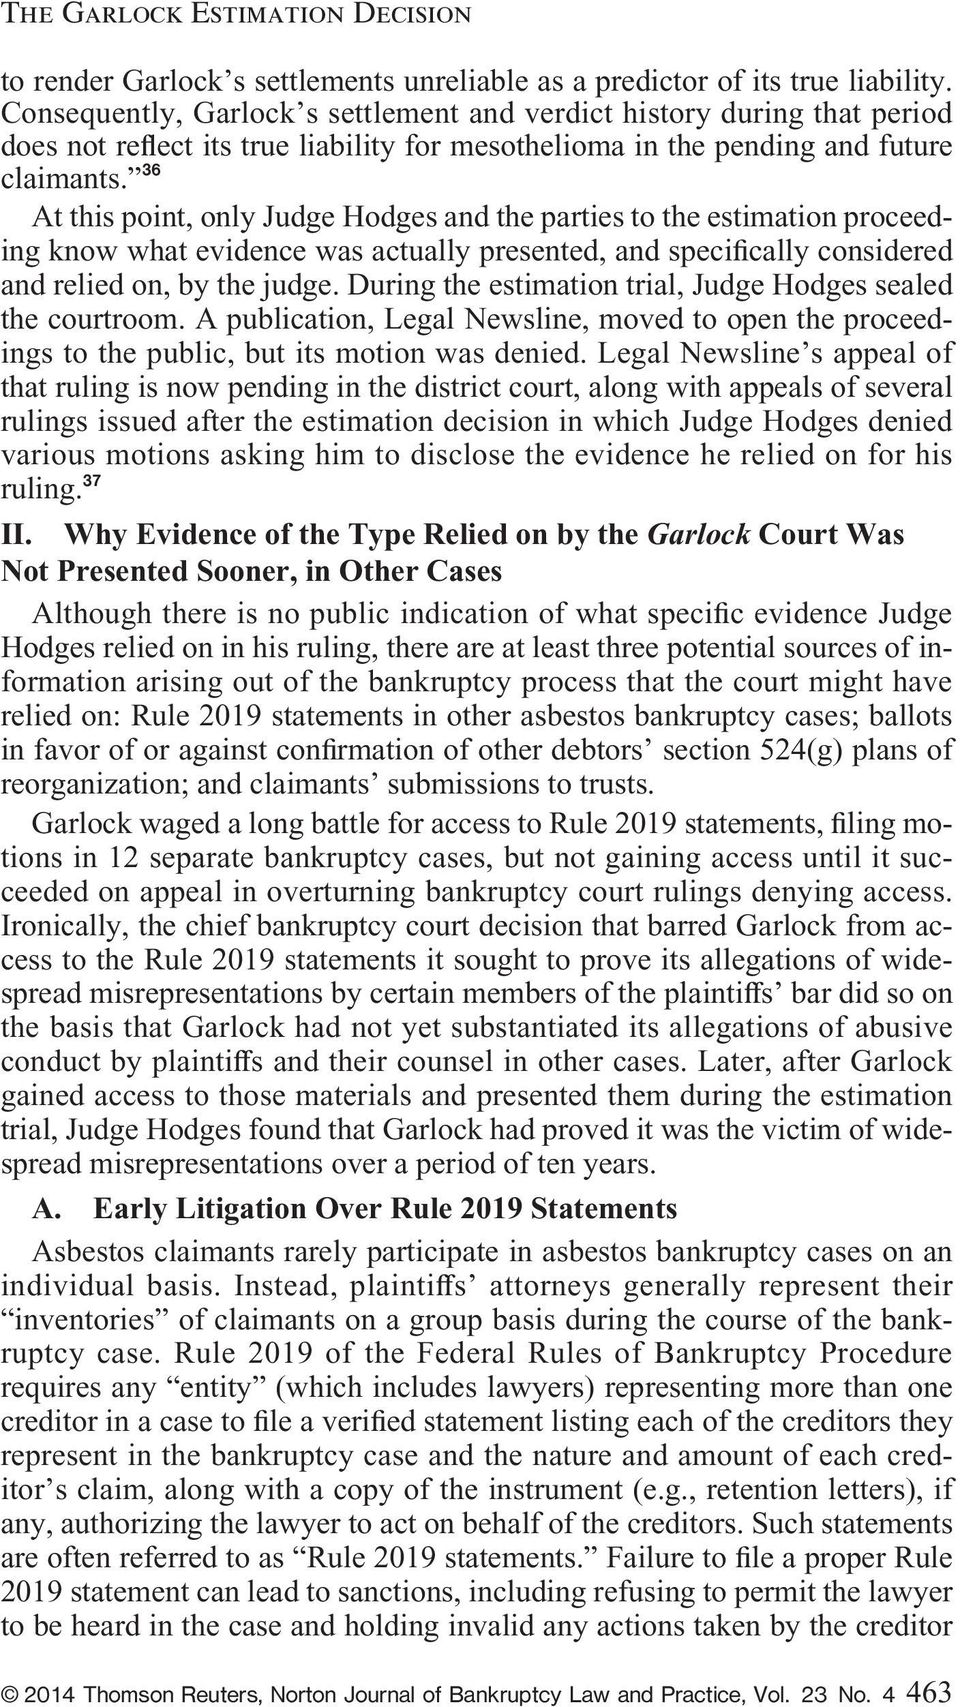 36 At this point, only Judge Hodges and the parties to the estimation proceeding know what evidence was actually presented, and speci cally considered and relied on, by the judge.